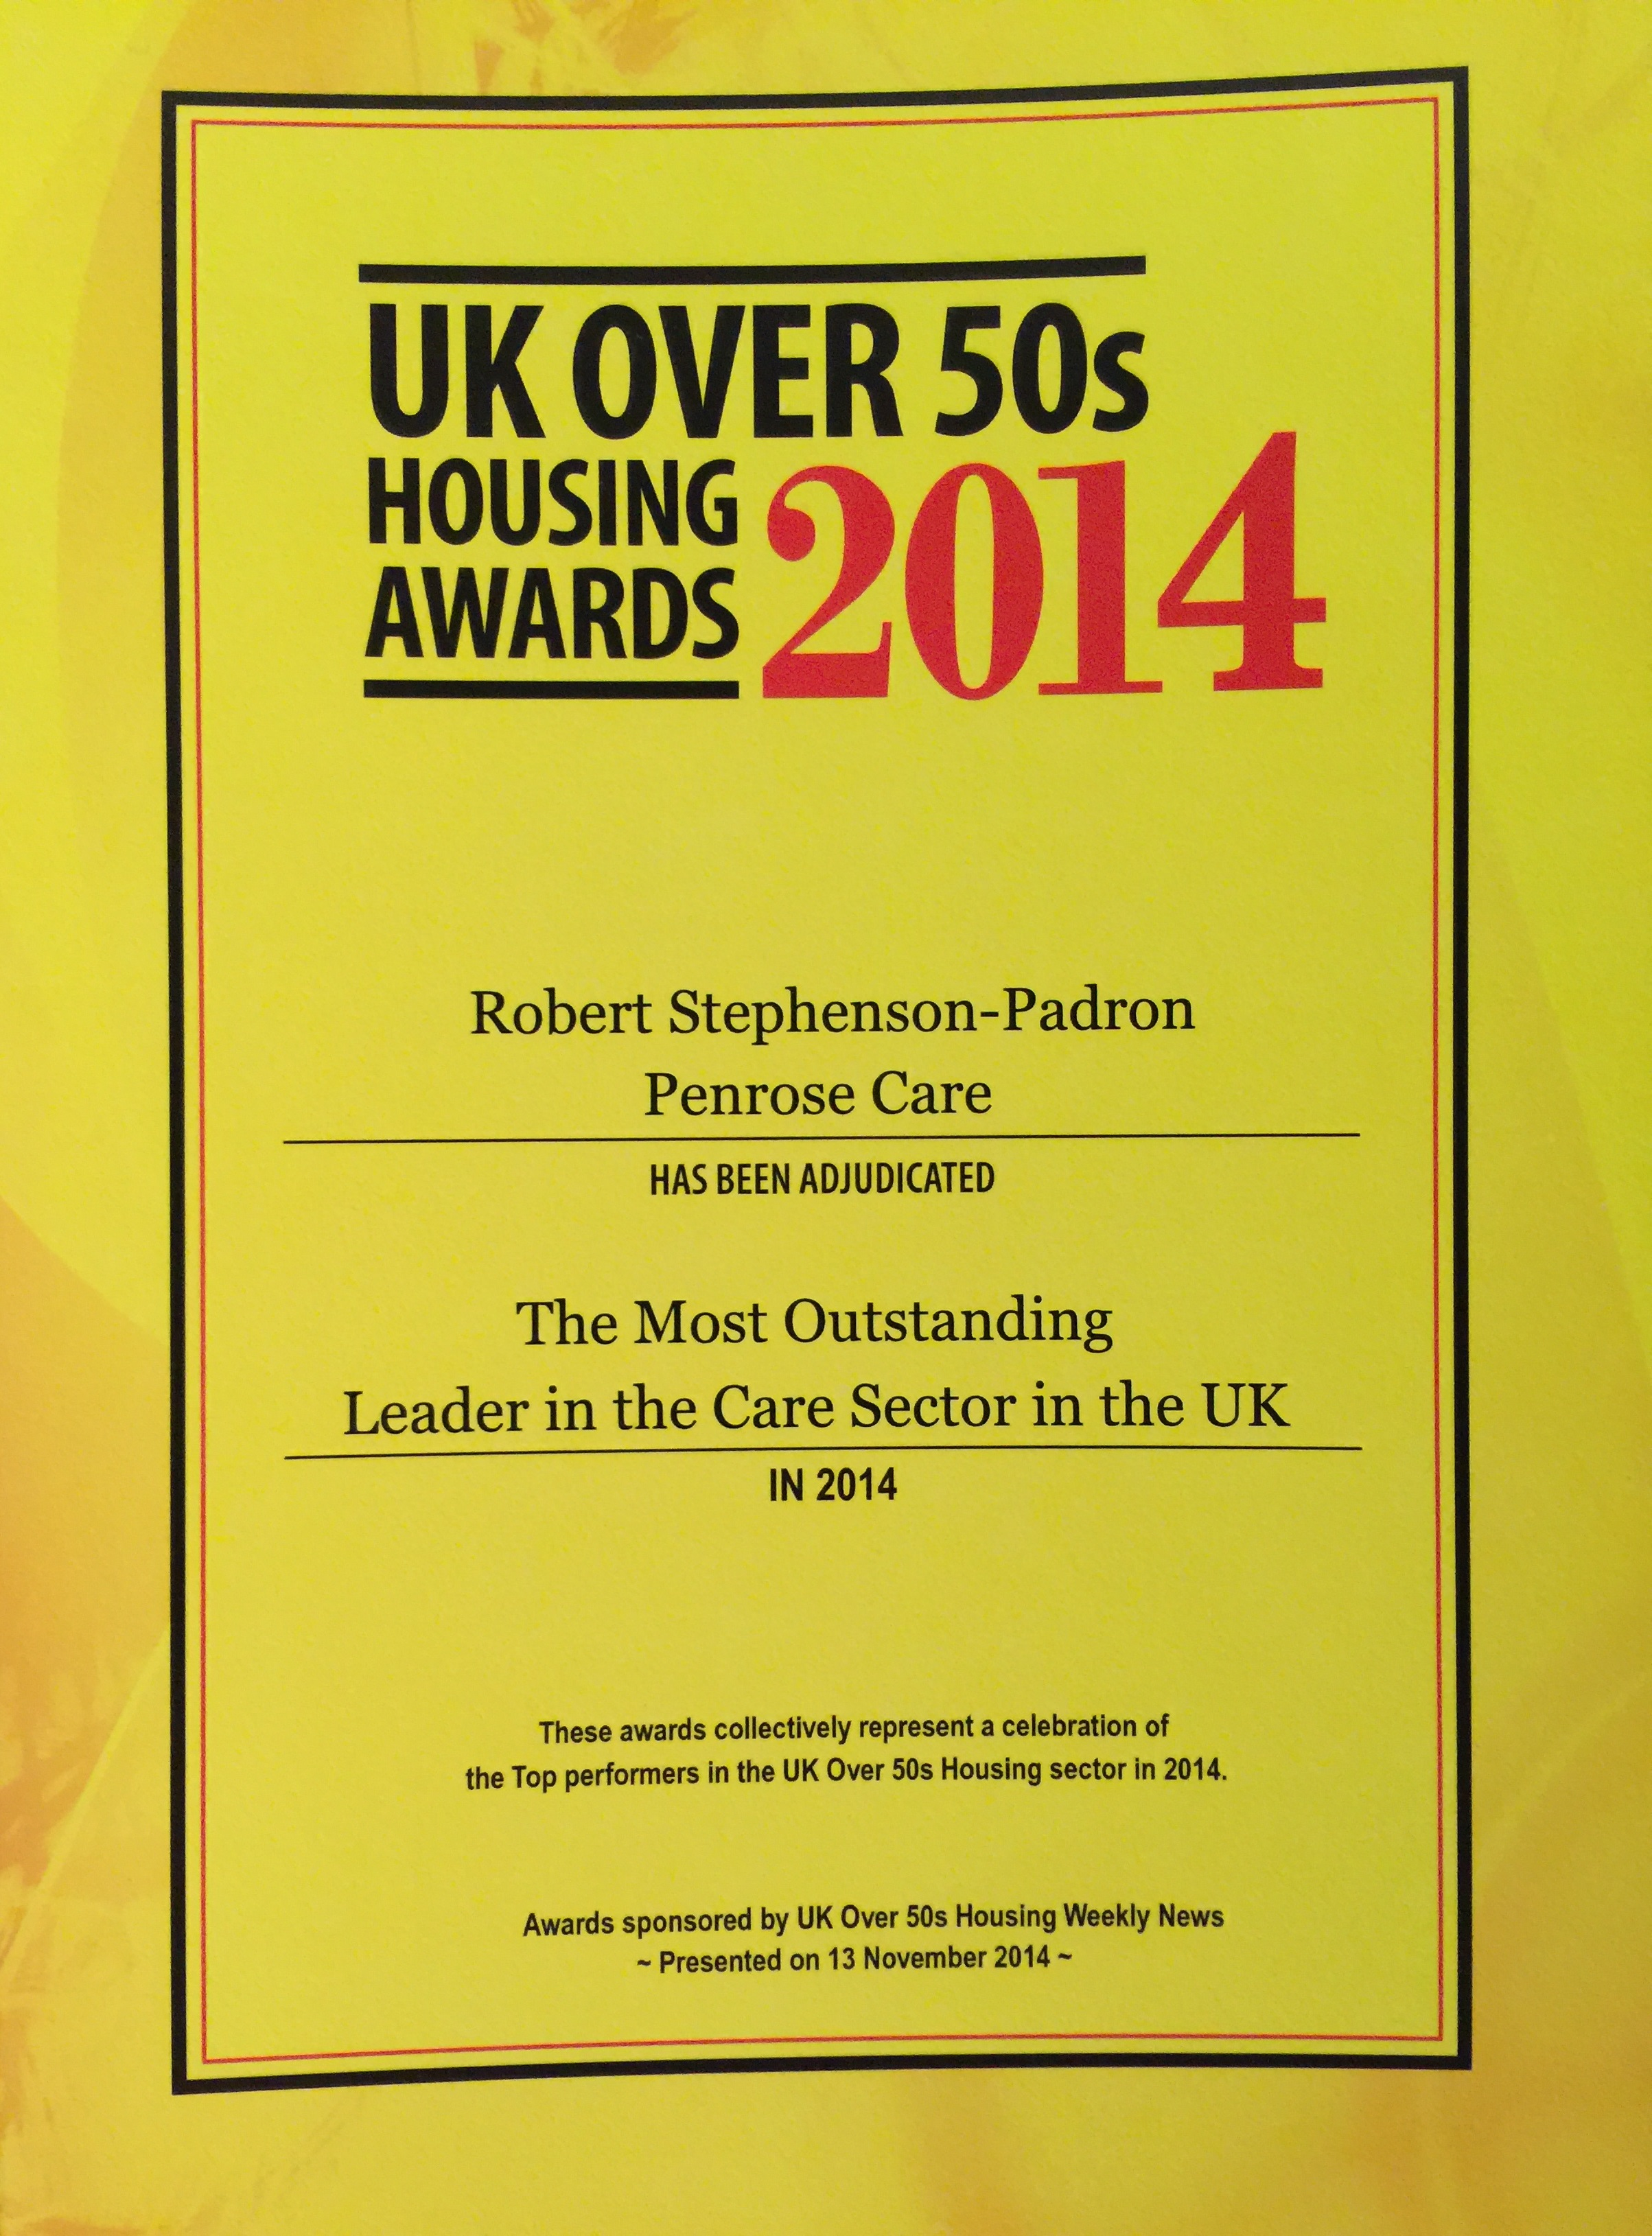 2014-11-13 (Penrose Care) Robert Stephenson-Padron UK Housing Over 50s Award 05